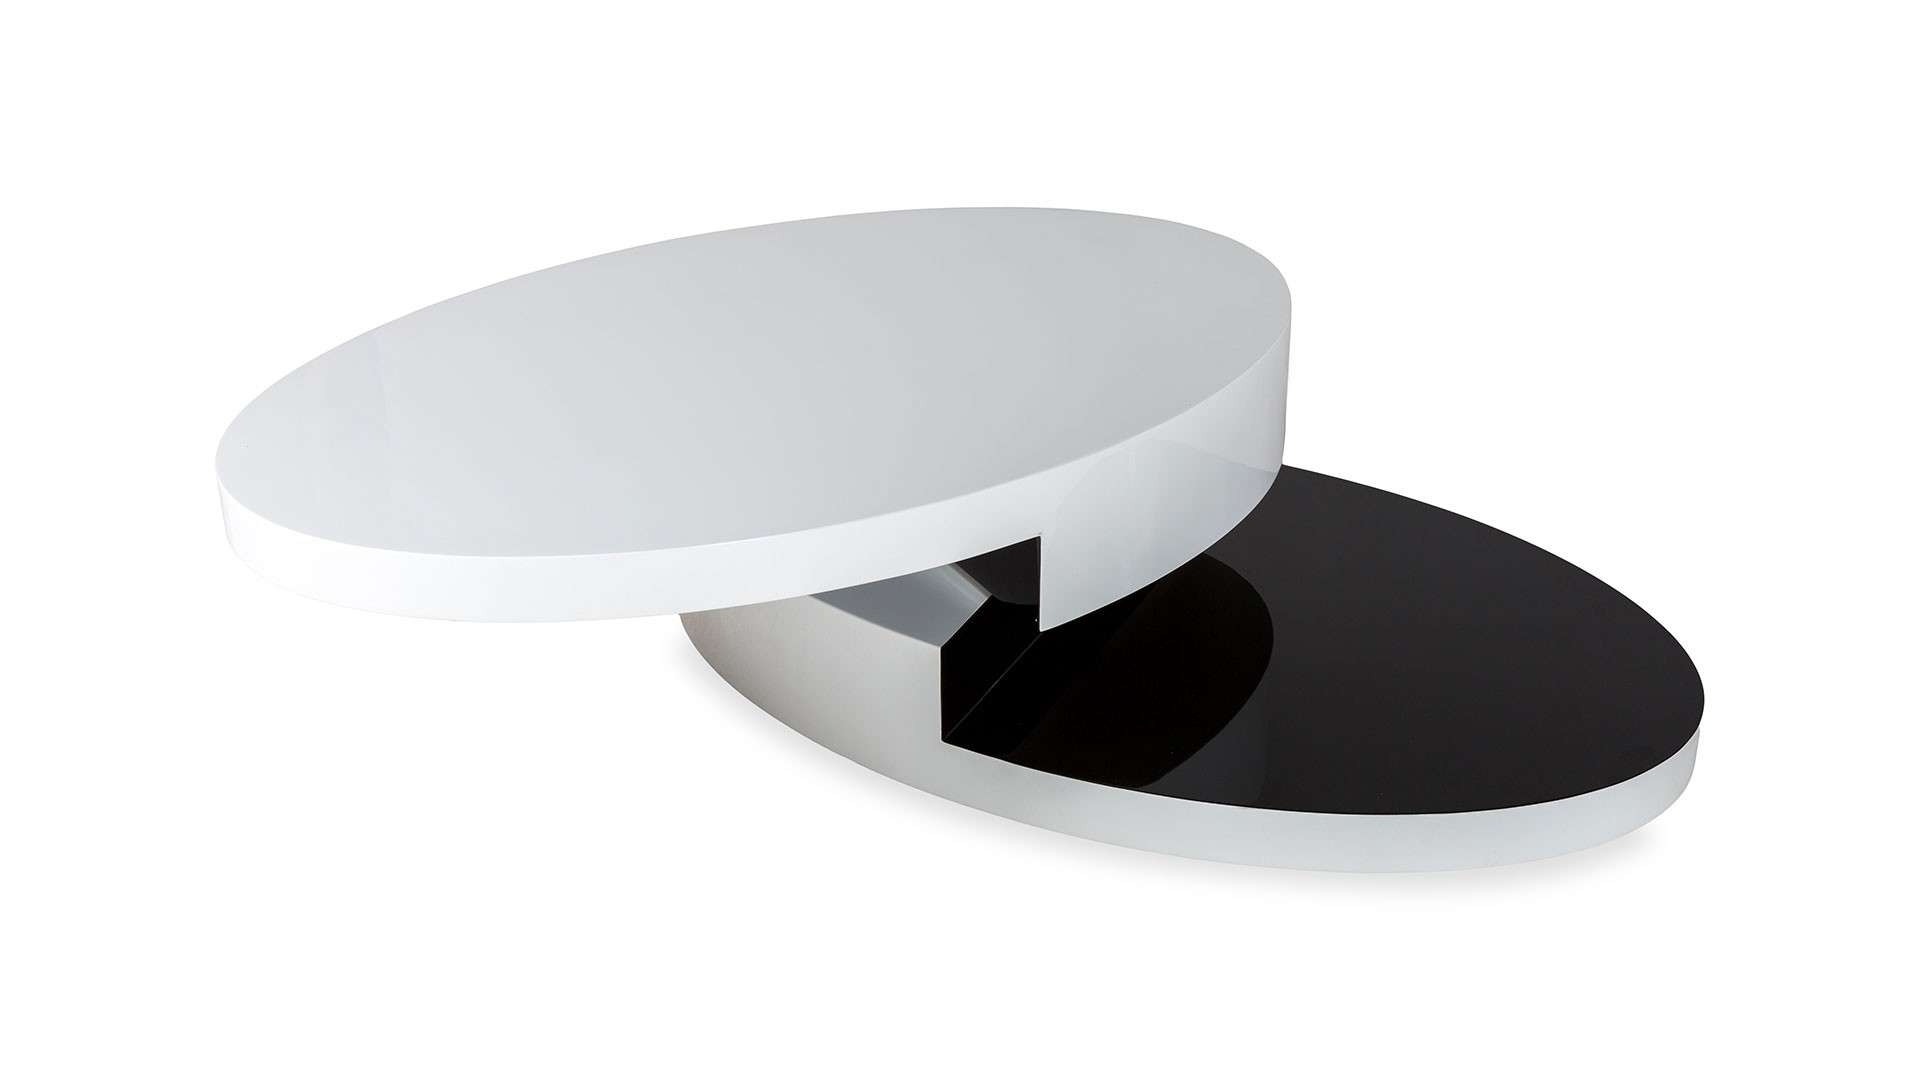 High Gloss White And Black Oval Coffee Table Worcester Inside 2018 Black Oval Coffee Table (View 11 of 20)